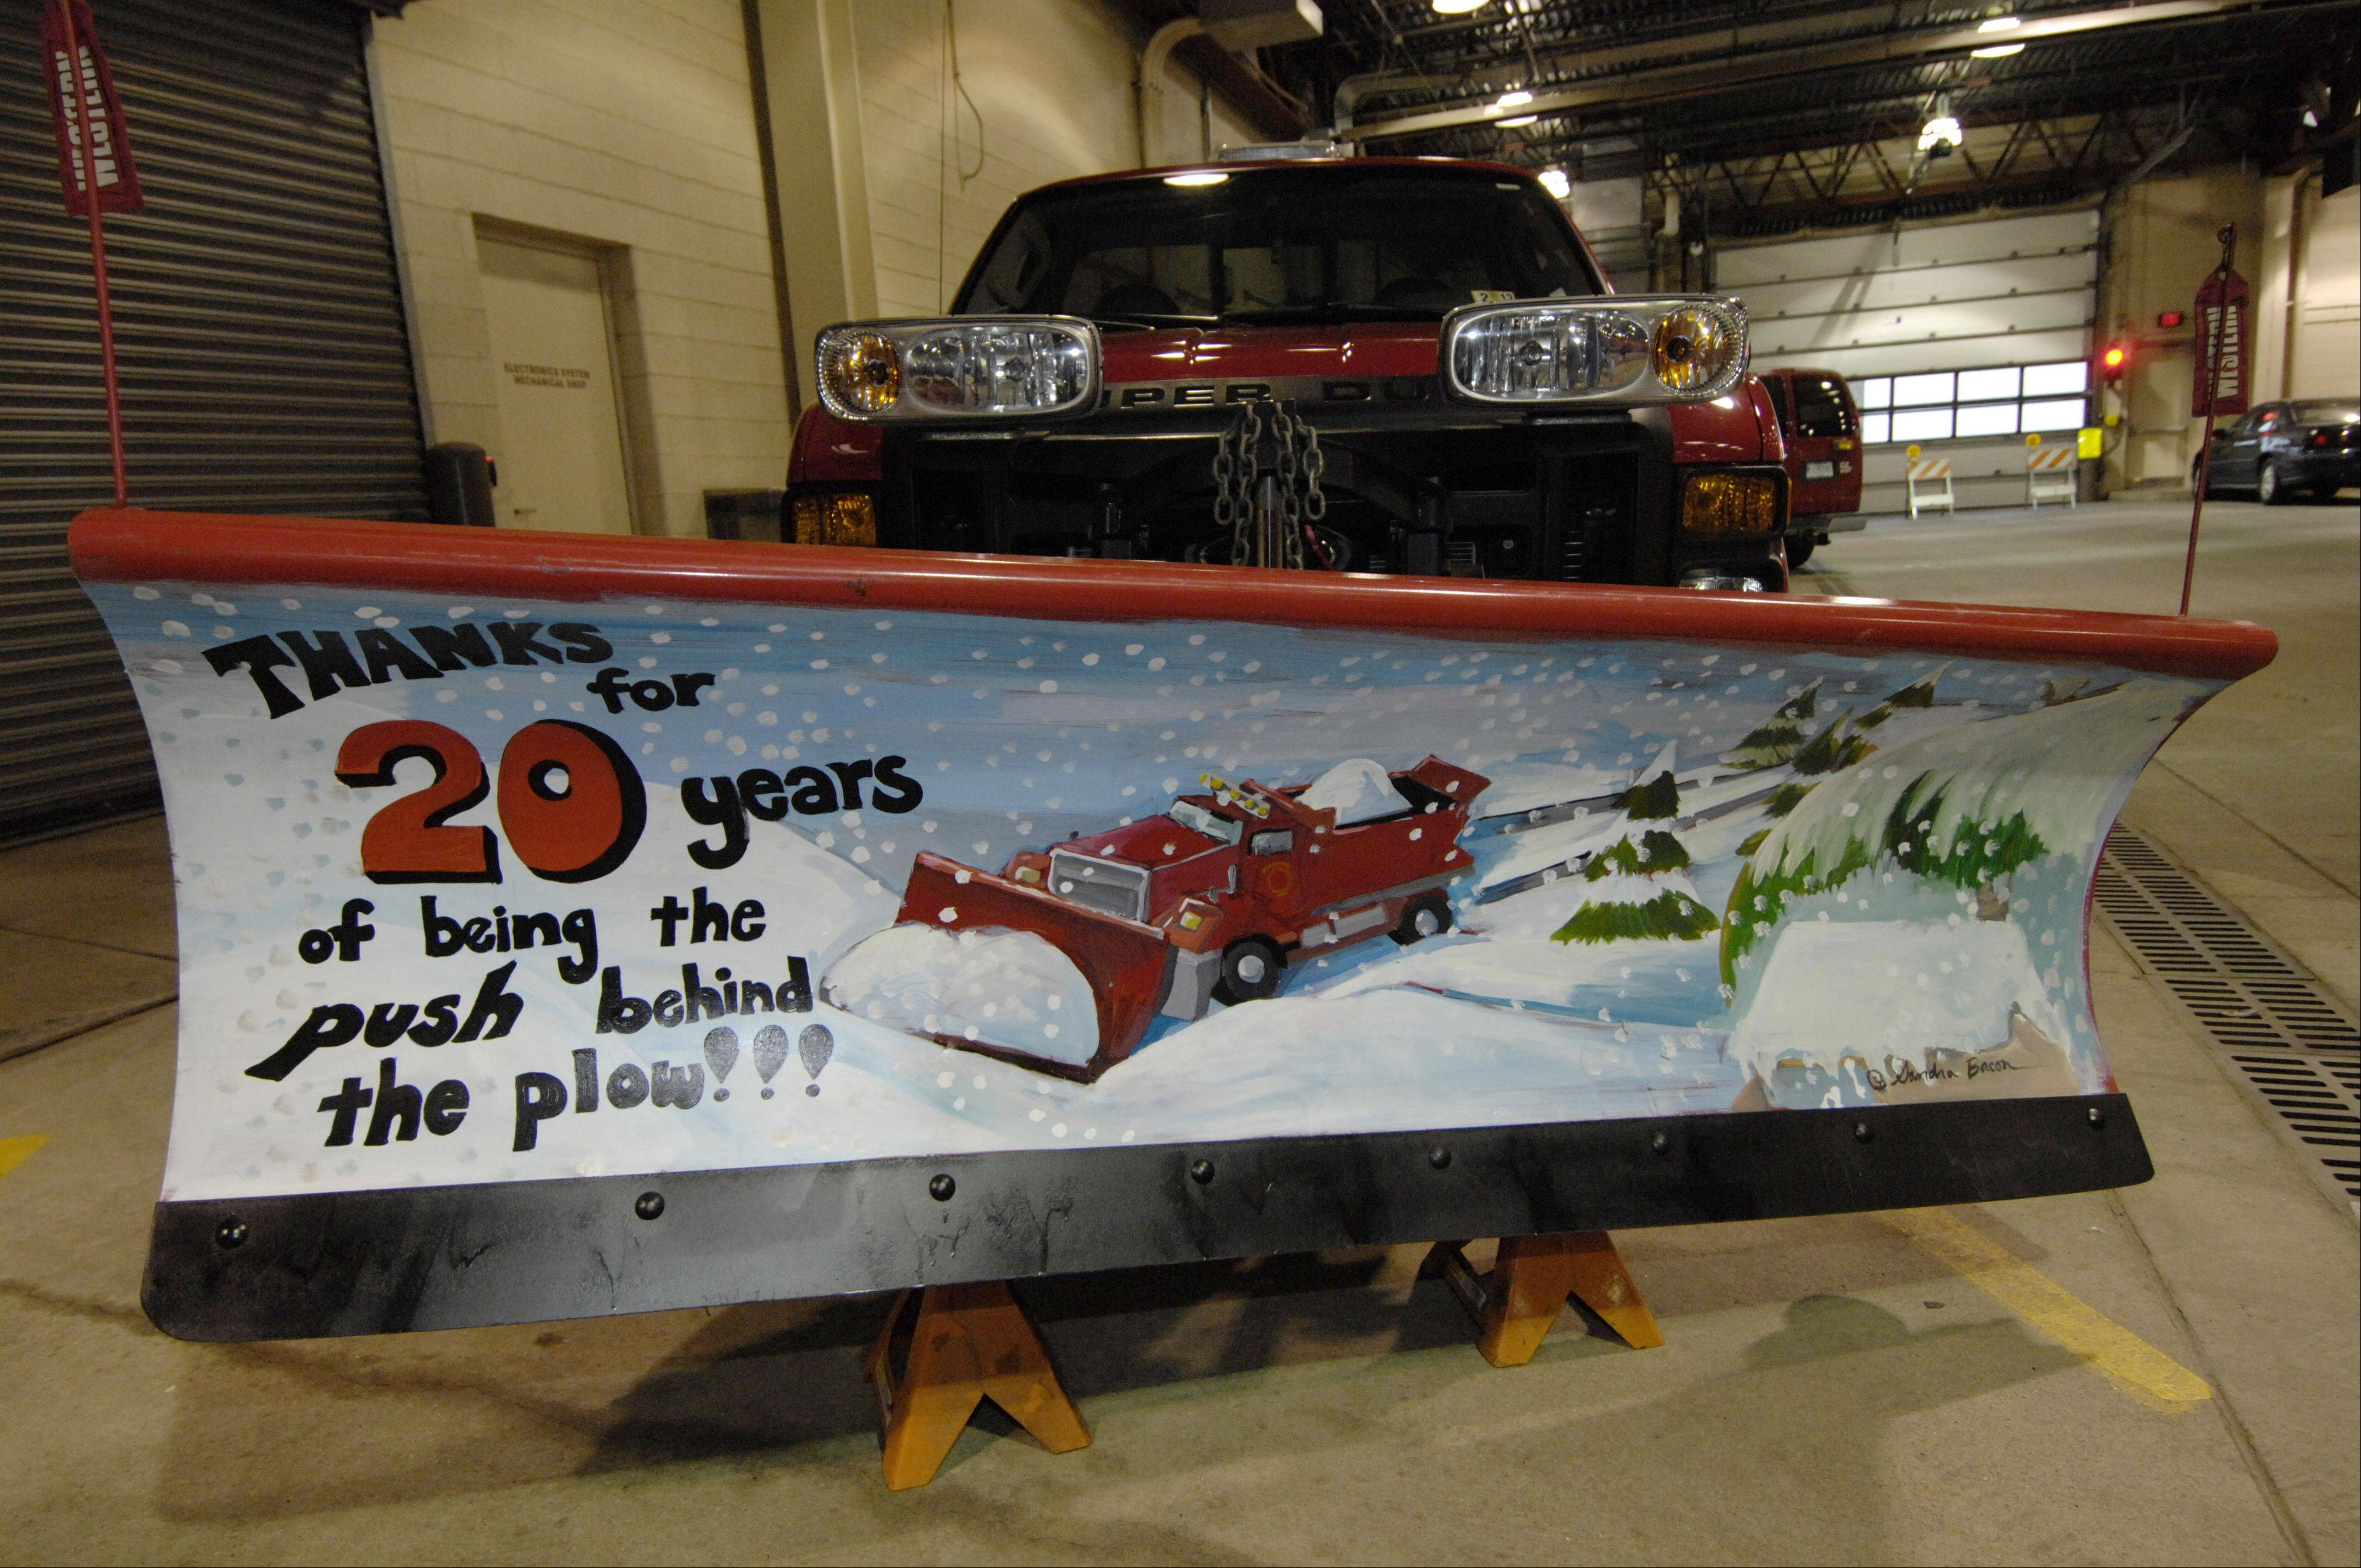 An Arlington Heights snowplow is painted to recognize Mayor Arlene Mulder's 20 years in office.